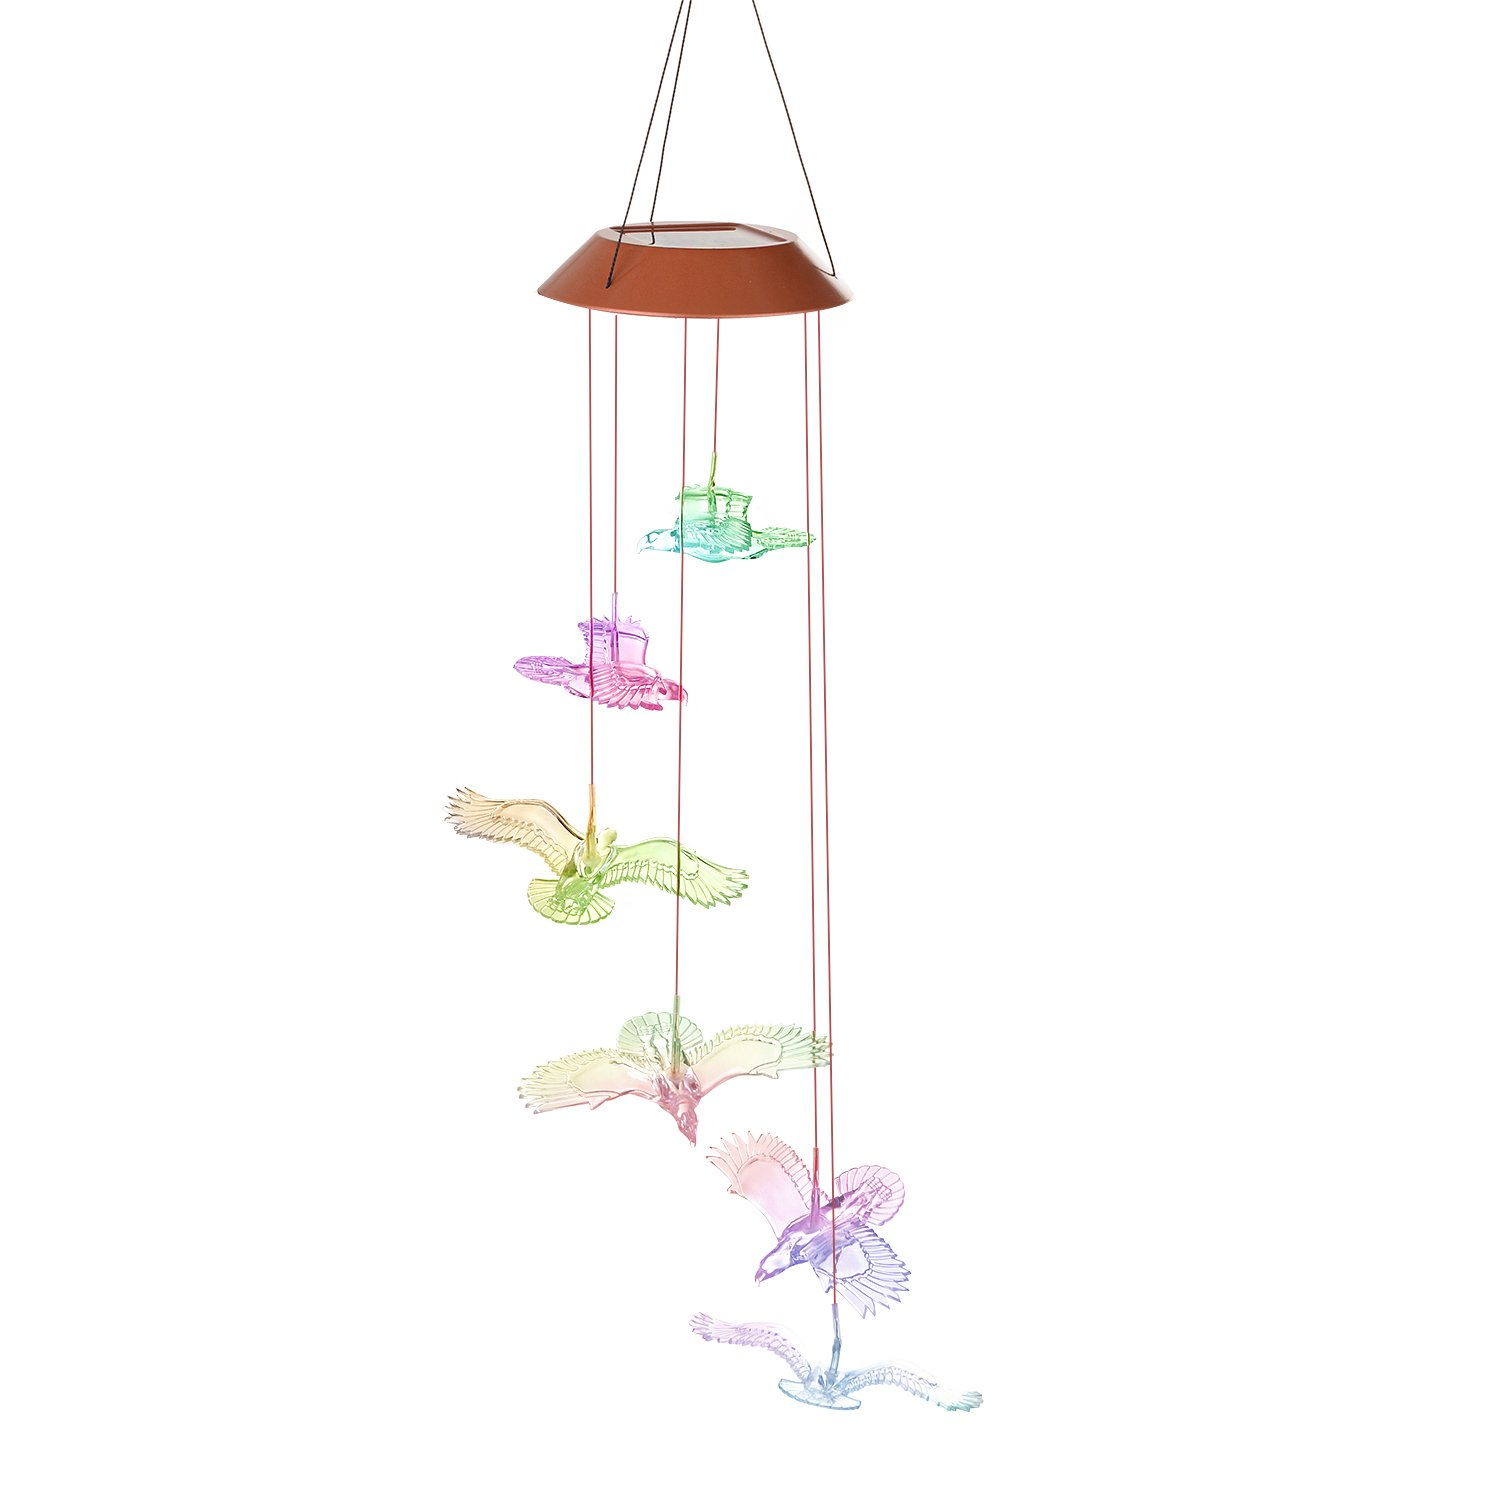 AGPTEK Color-Changing LED Solar Mobile Wind Chime, LED Changing Light Color Waterproof Six Bald Eagles Wind Chimes For Home/ Party/ Night Garden Decoration